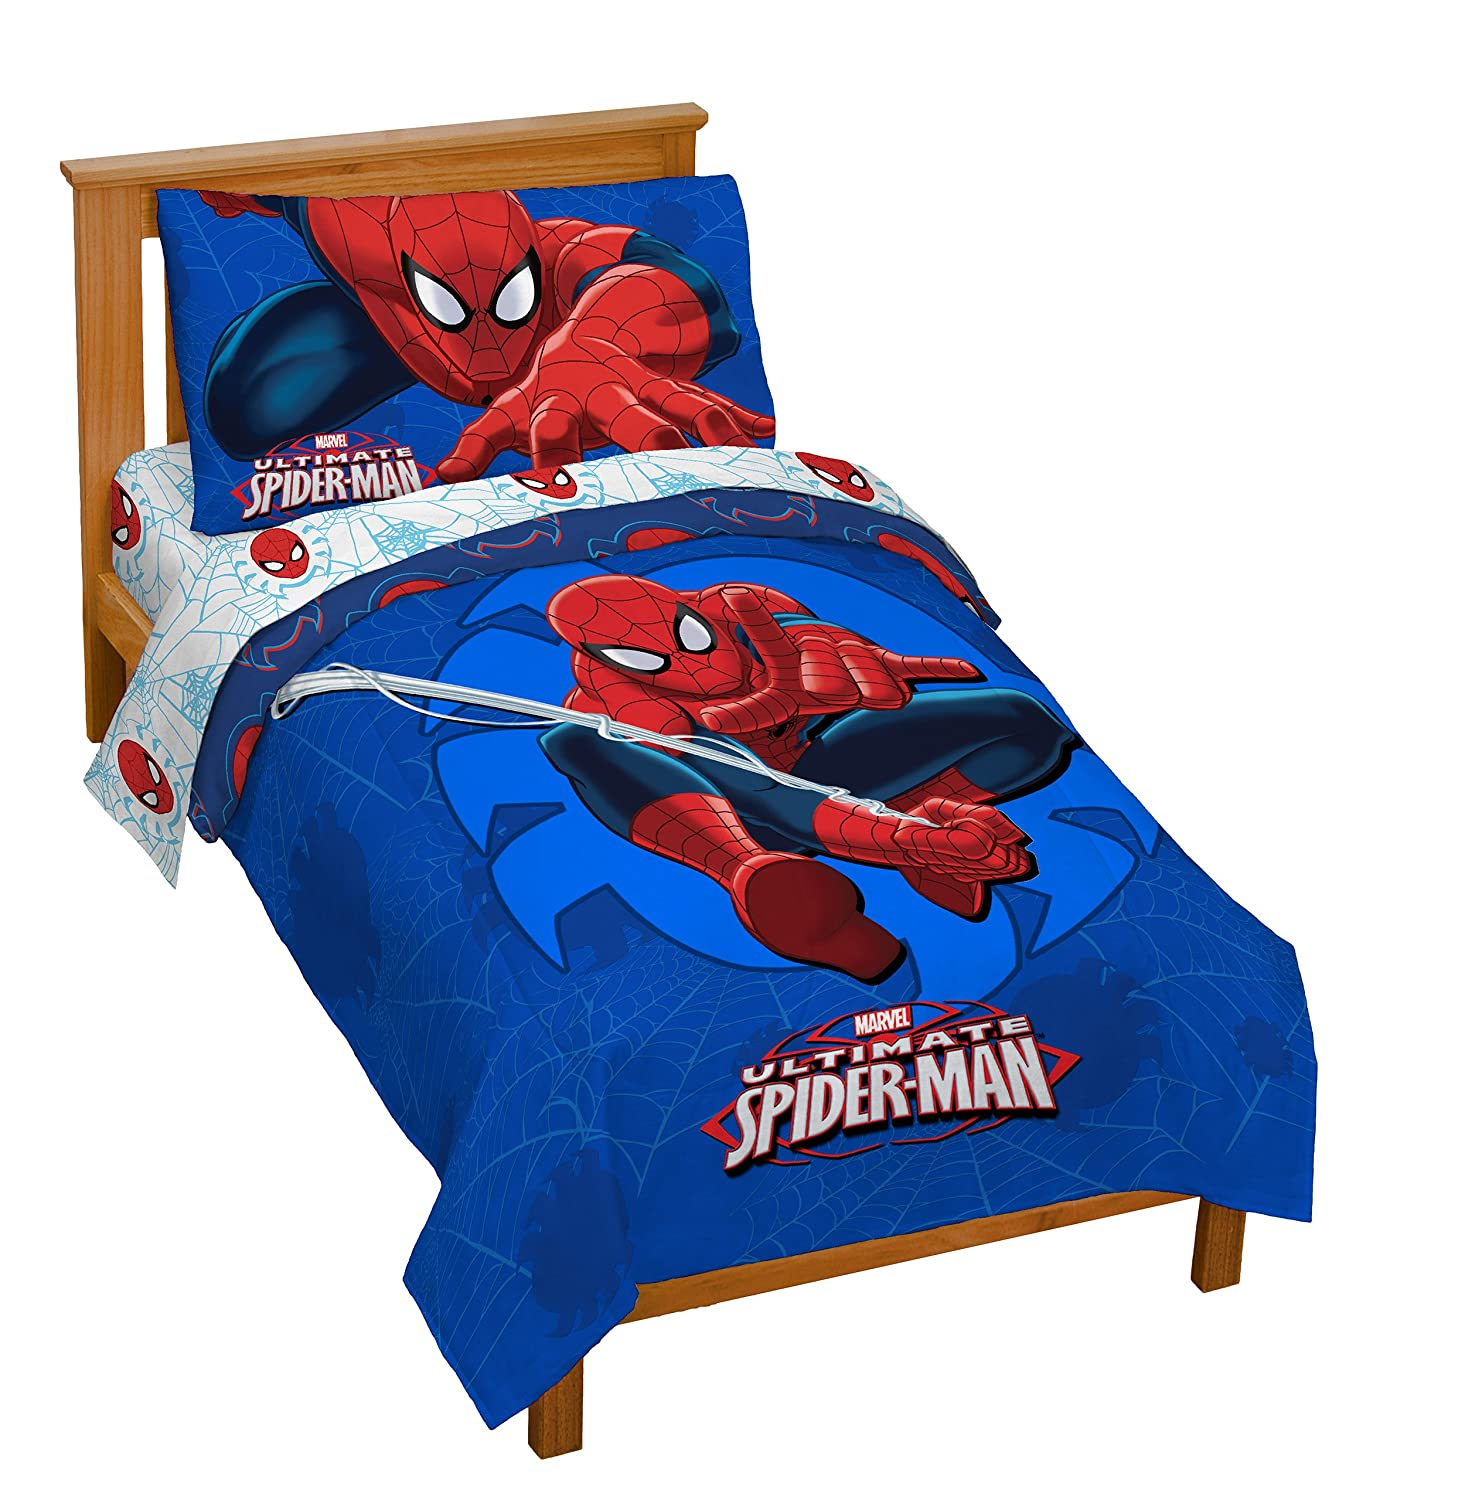 Spiderman and friends bedding -